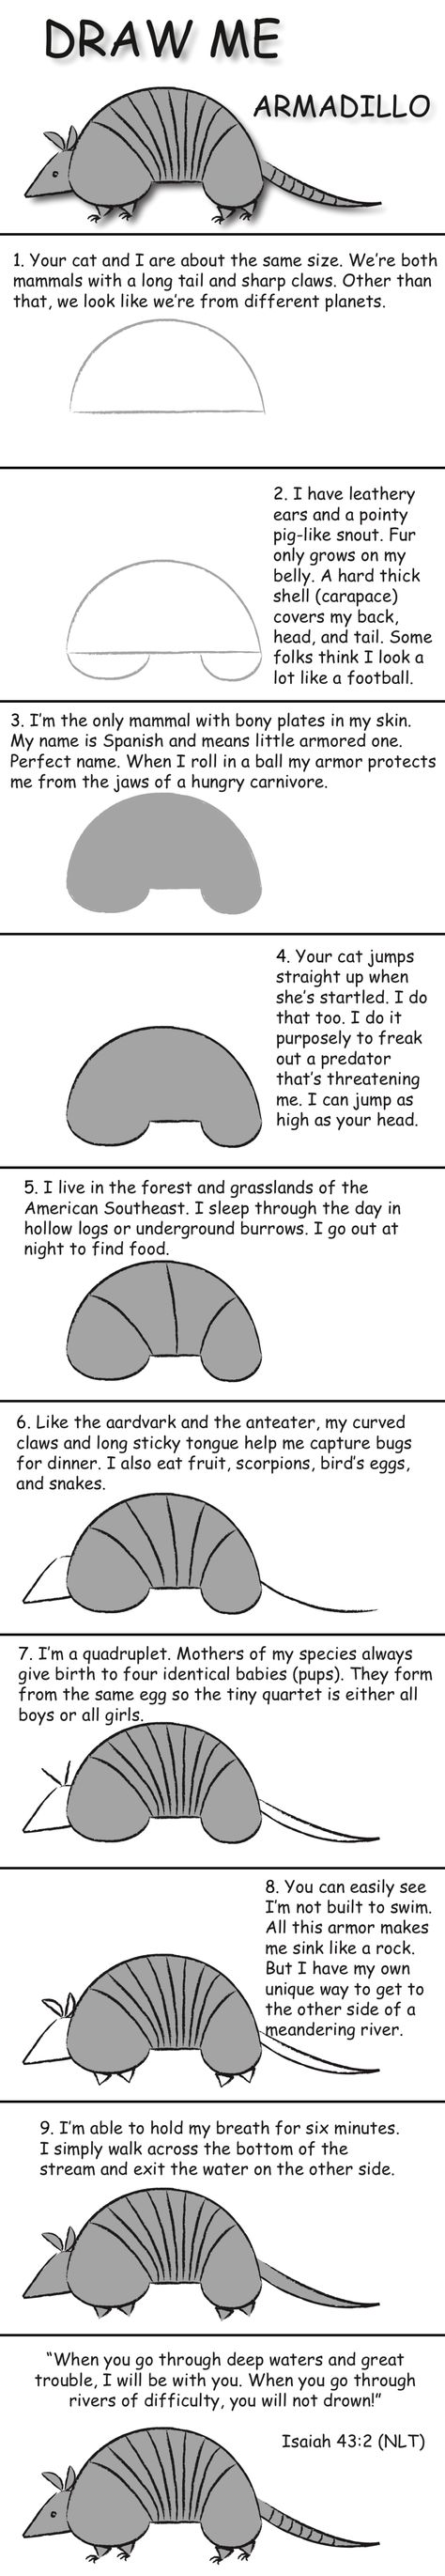 how to draw a armadillo step by step how to draw an armadillo armadillo by step how draw a to step